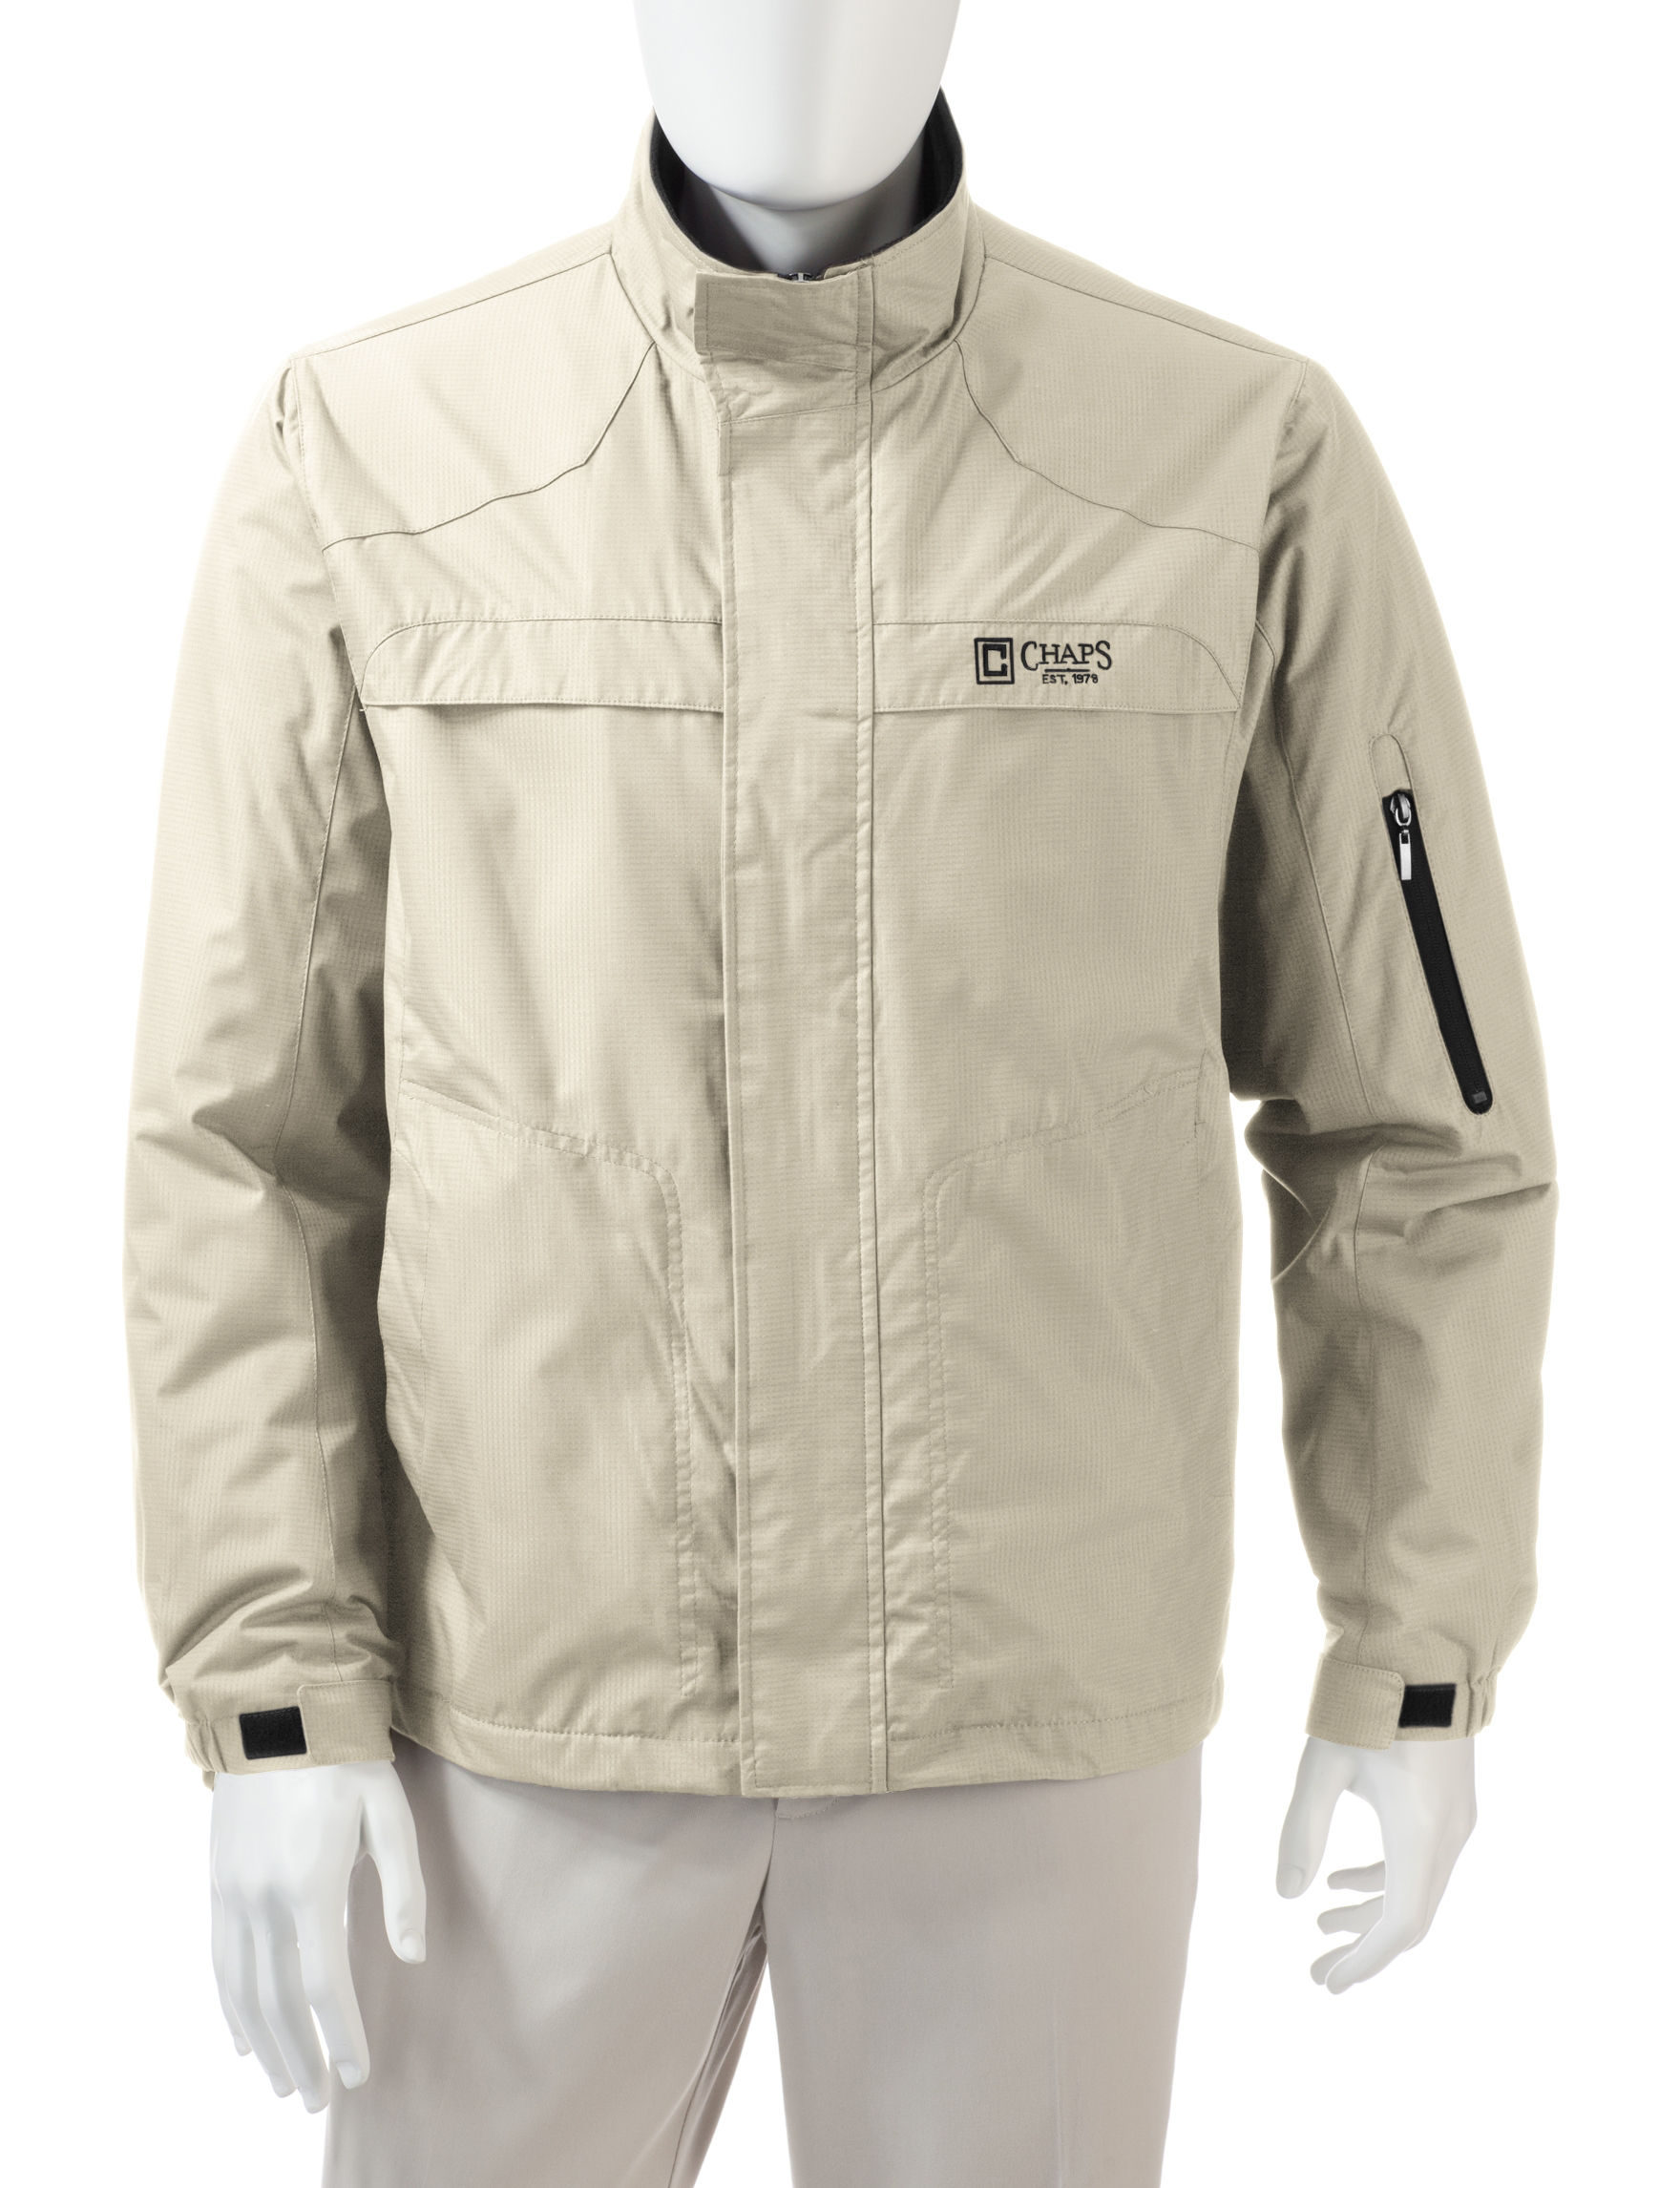 Chaps Beige Insulated Jackets